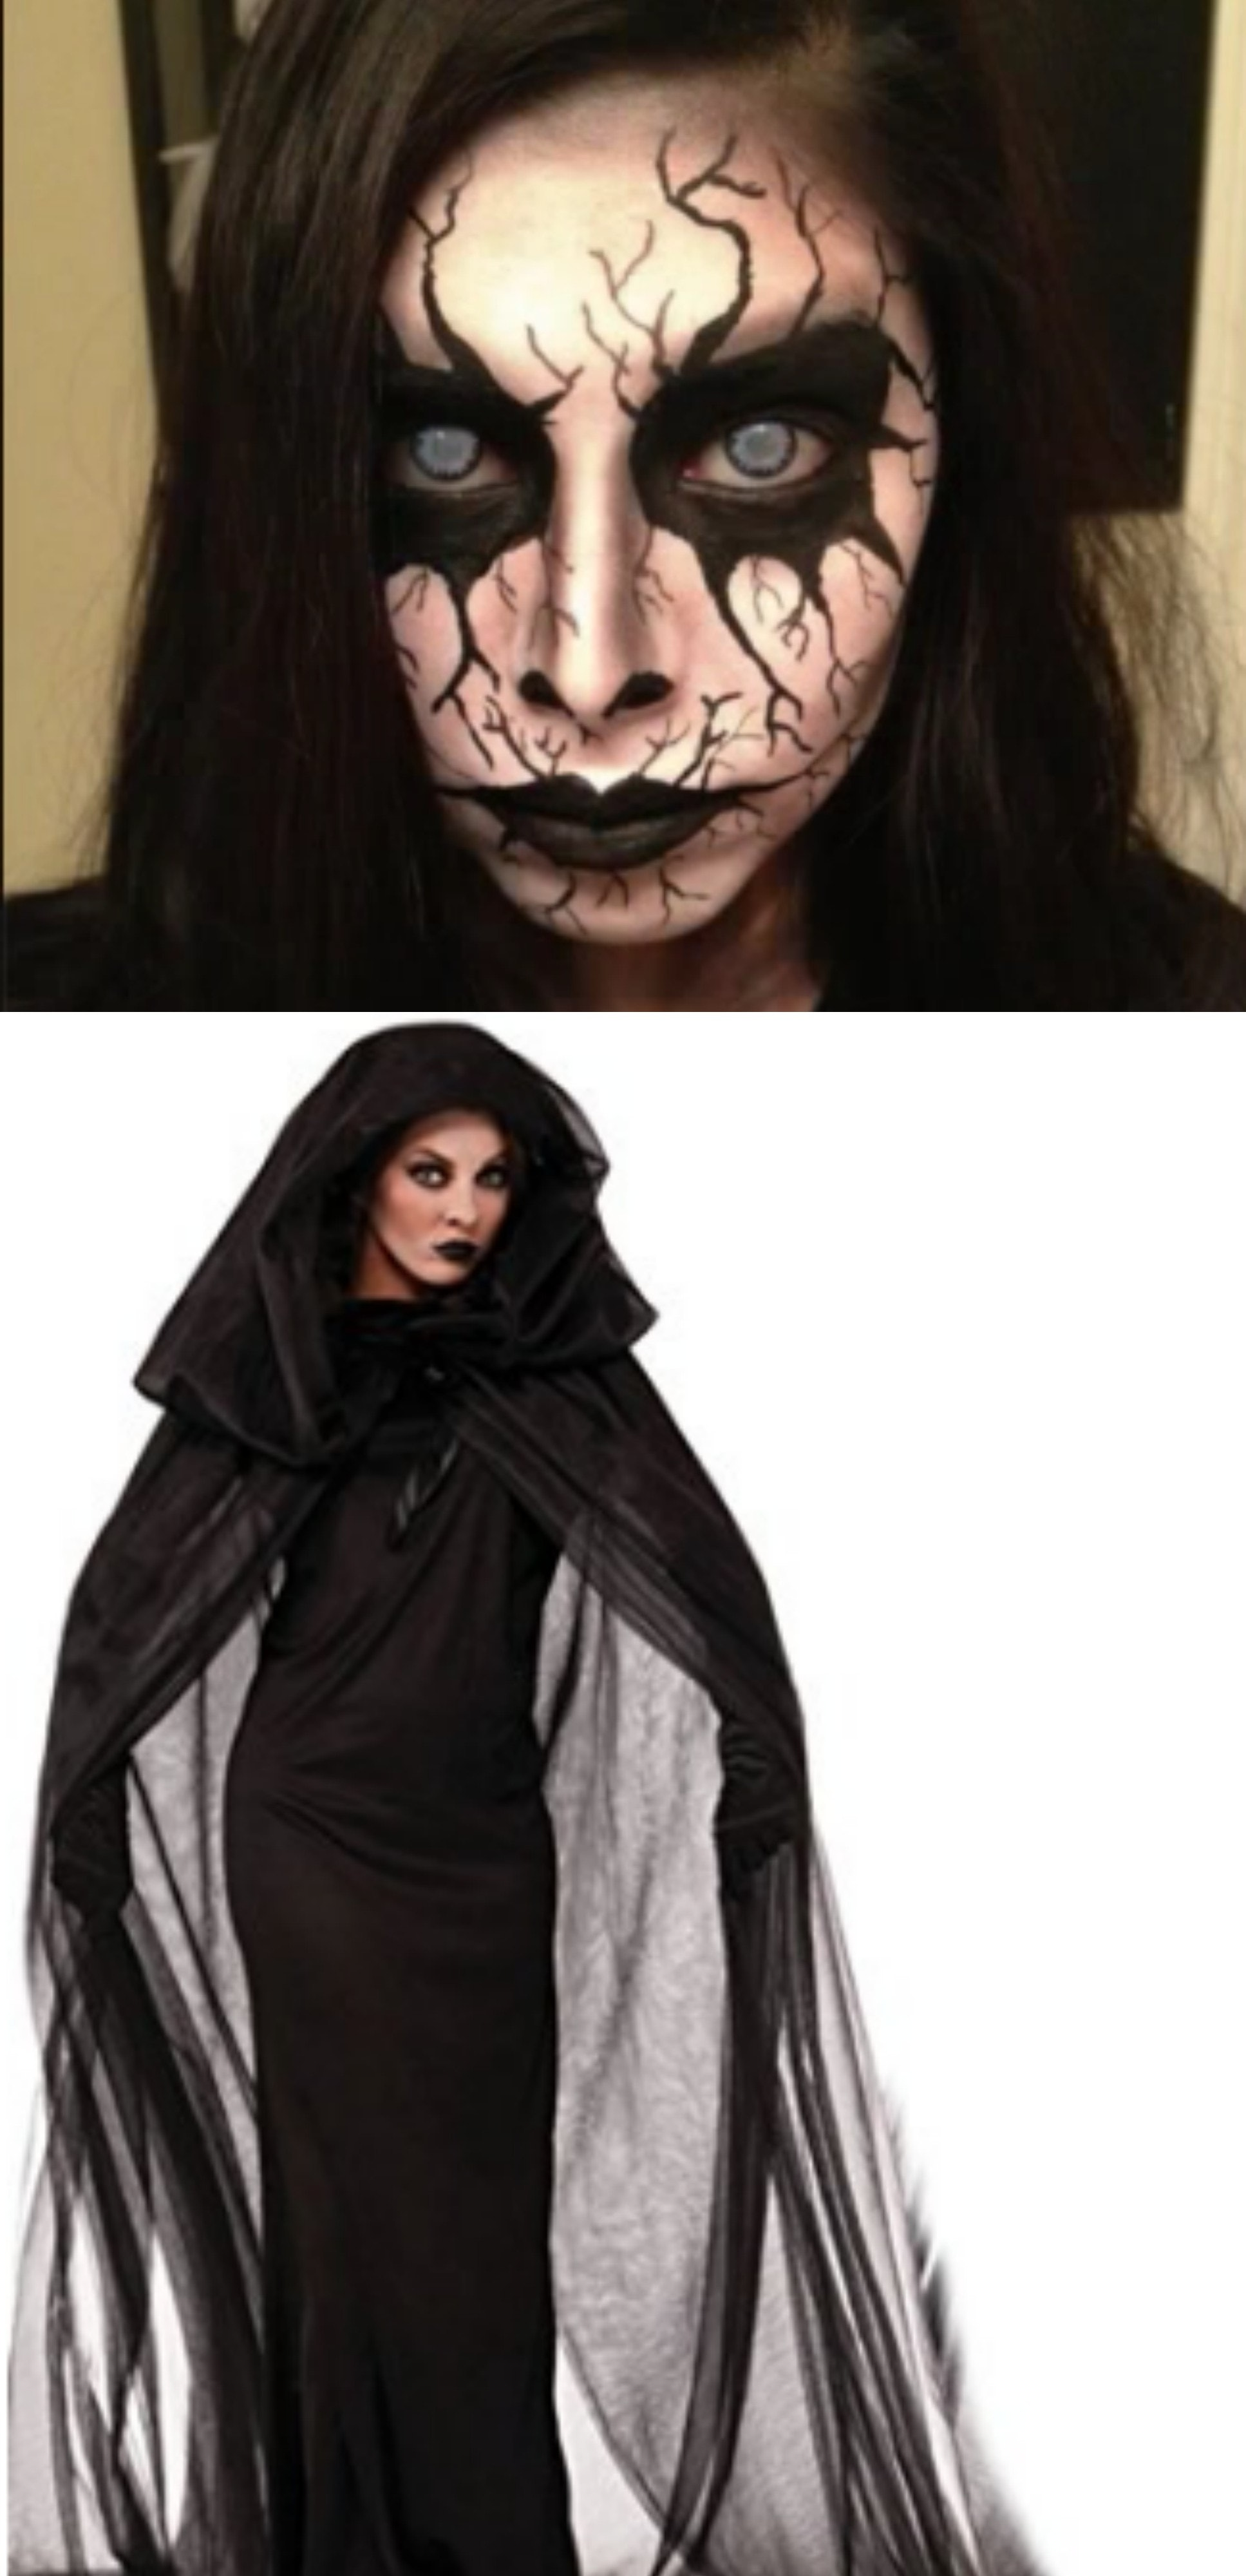 13 creepy halloween costume ideas for 2016 that will make everyone hope theyre on your good side